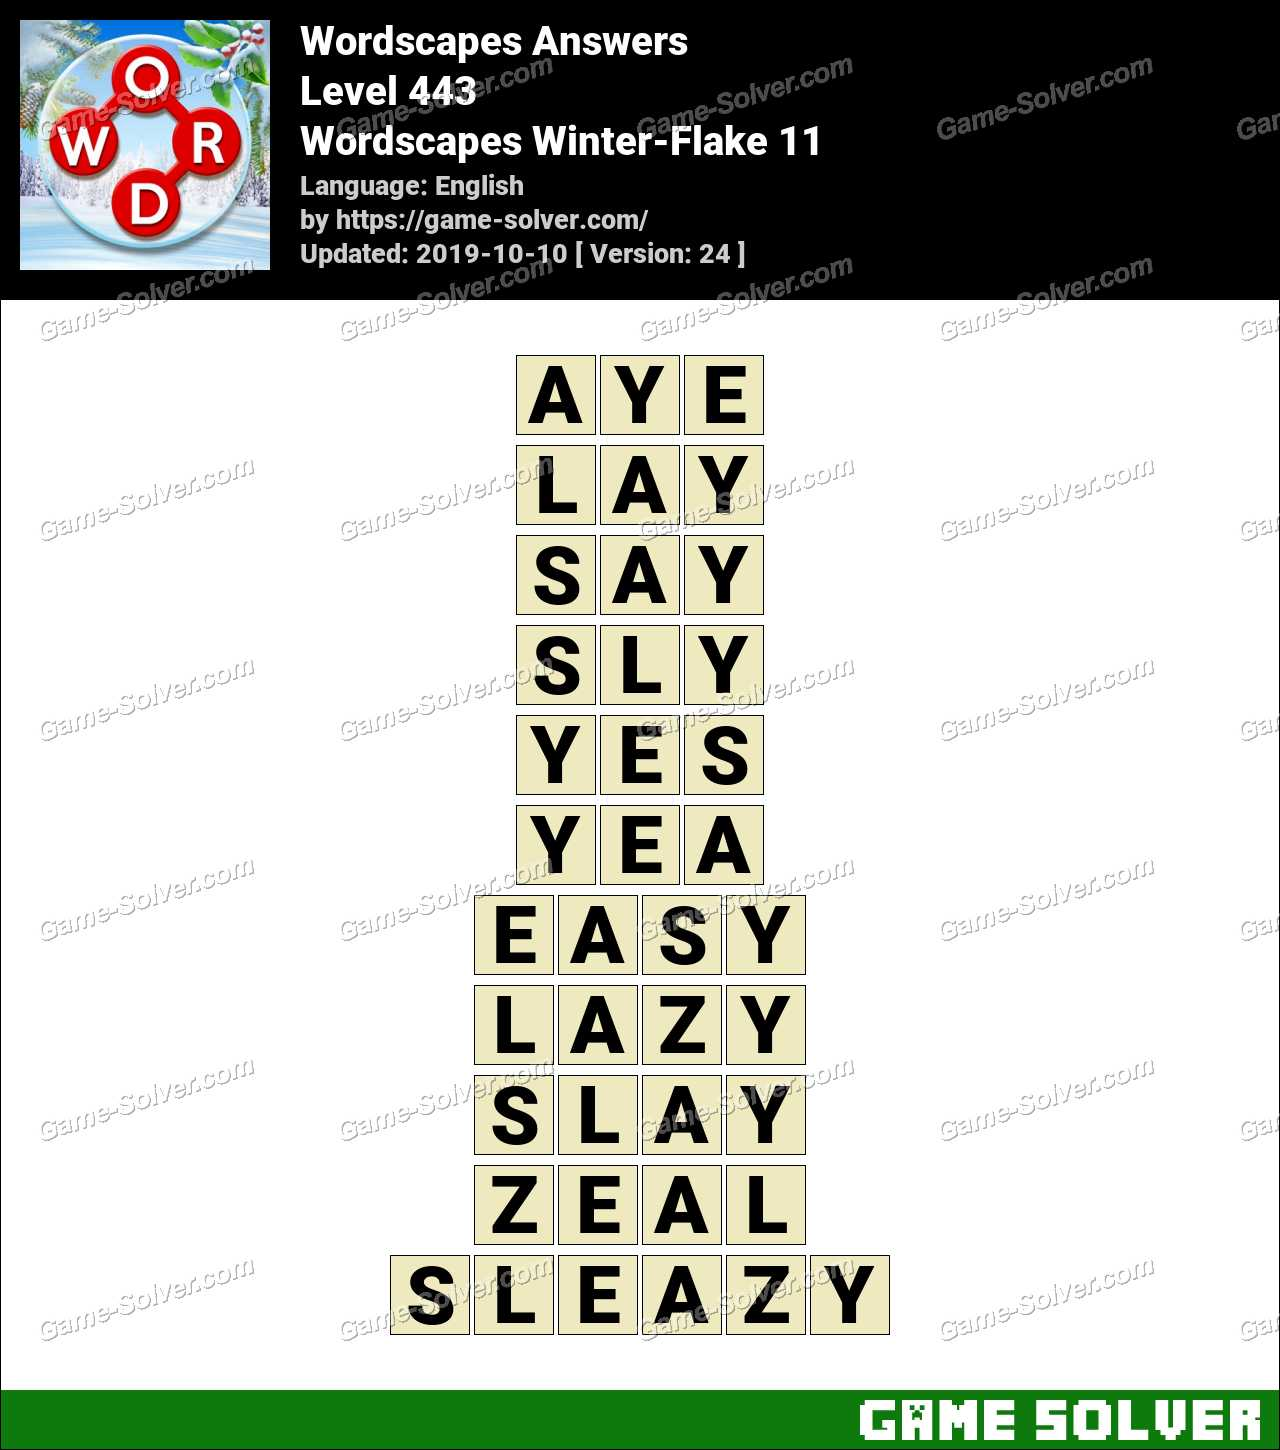 Wordscapes Winter-Flake 11 Answers